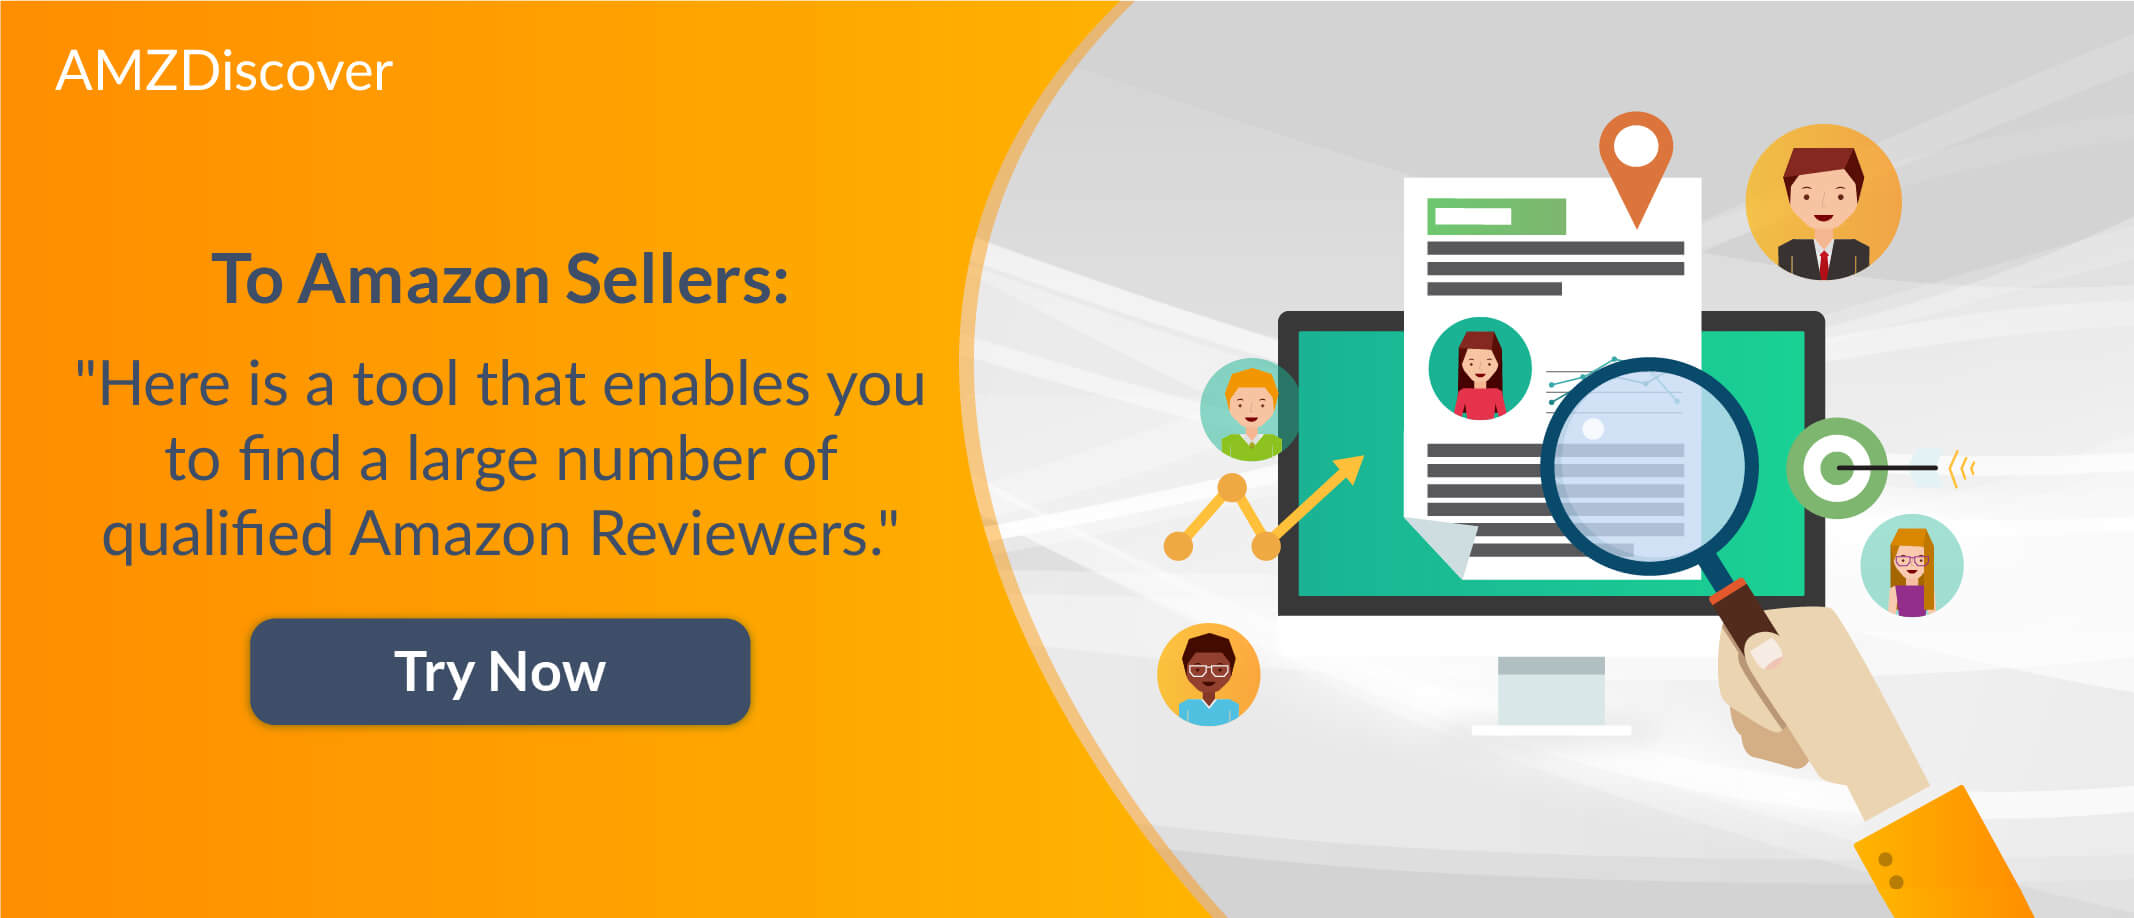 amzdiscover- how to find reviewers